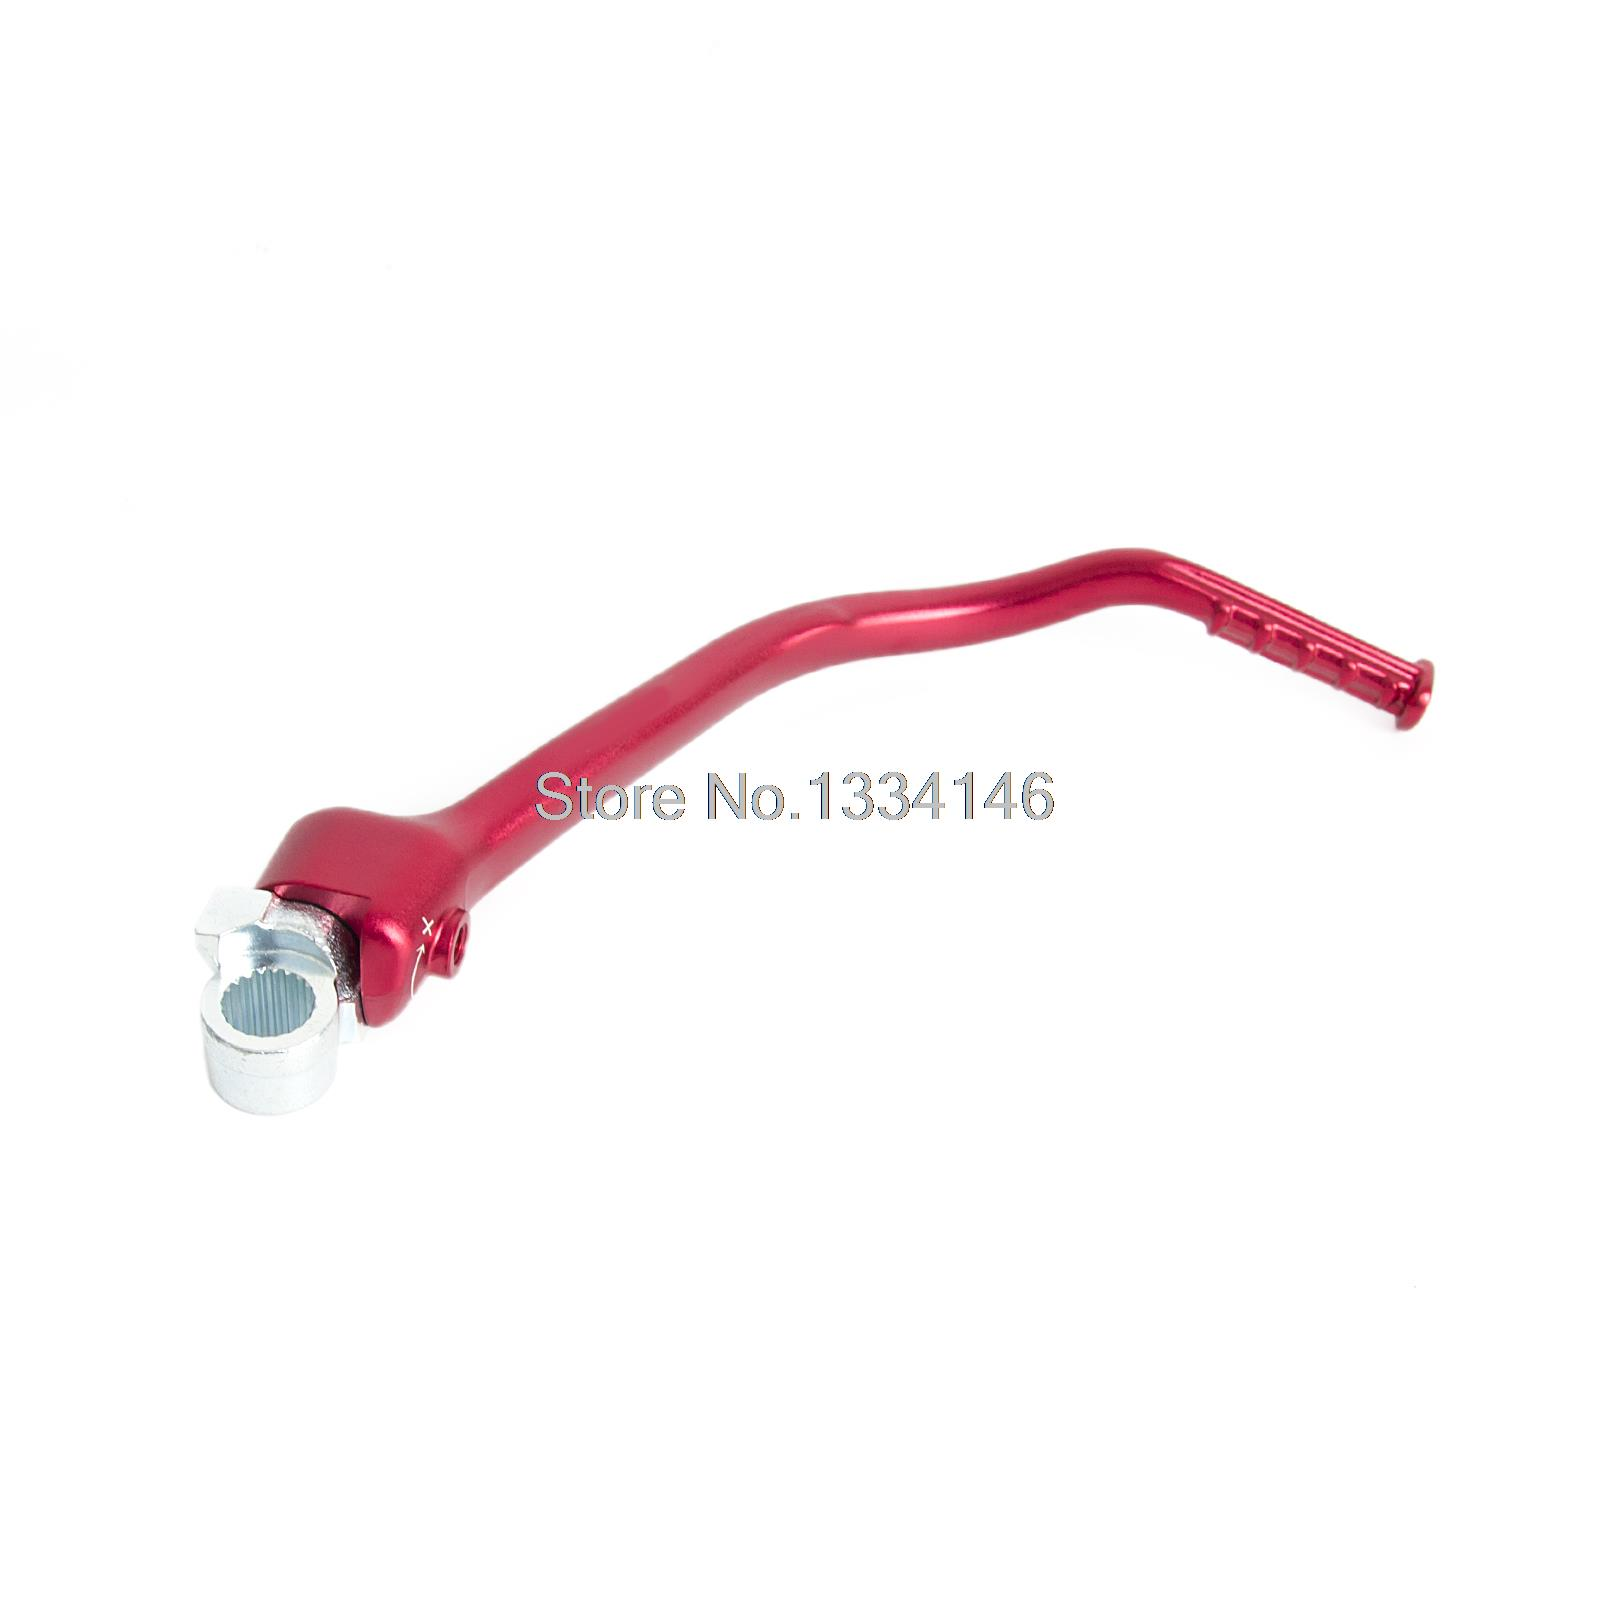 Anodized Red Forged Kick Start Lever for Honda CRF250R 2012-2016 13 14 15